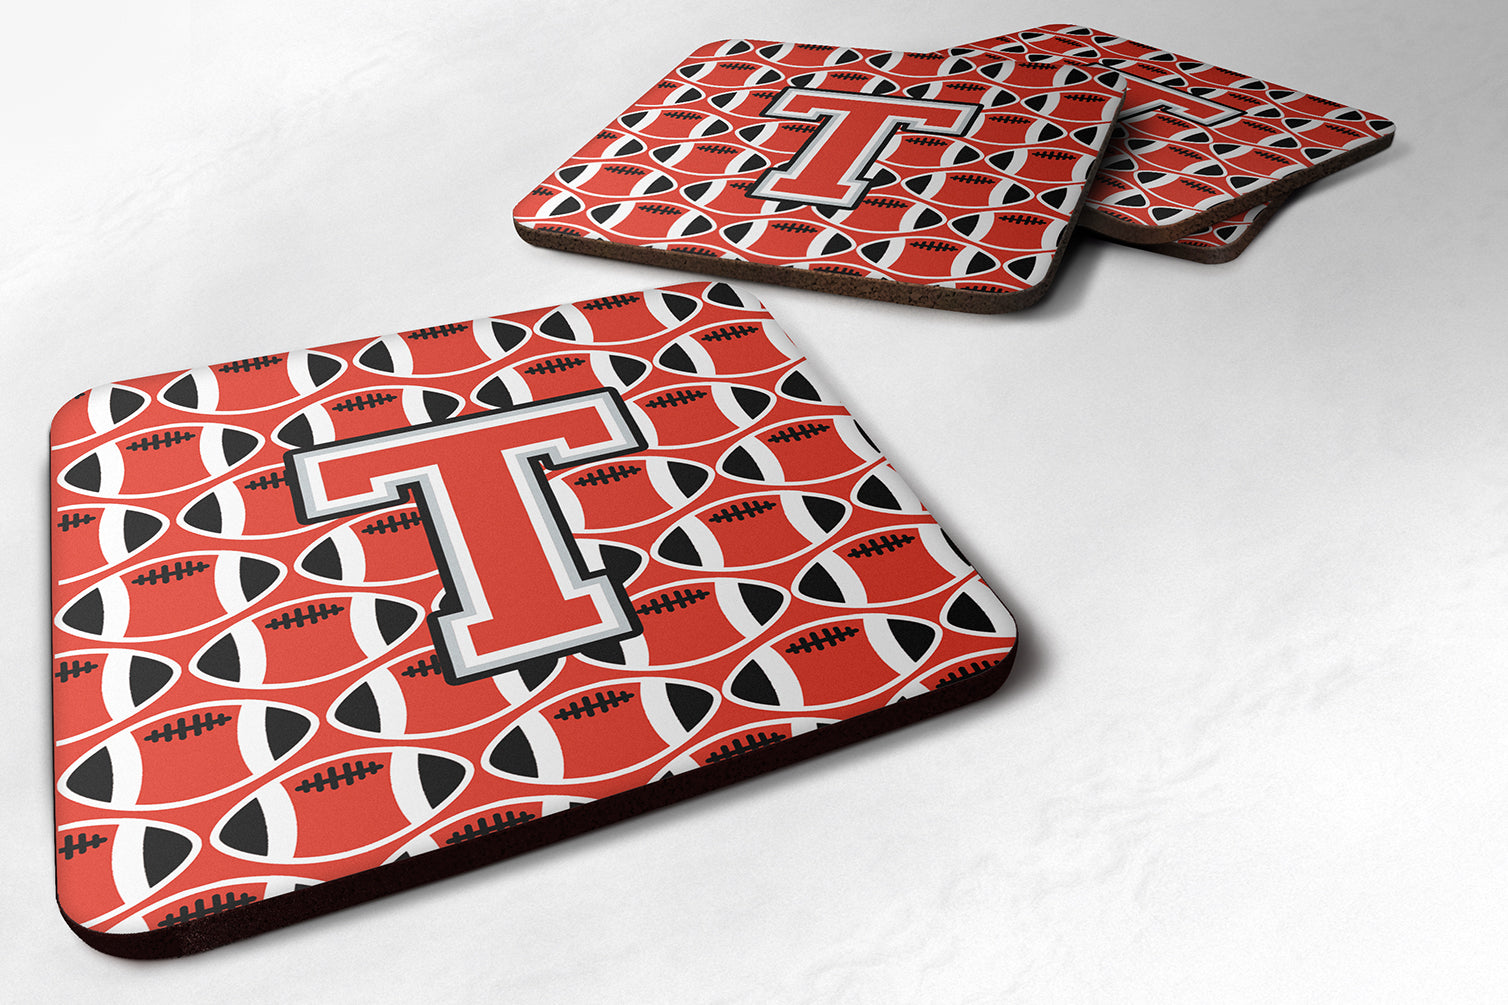 Letter T Football Scarlet and Grey Foam Coaster Set of 4 CJ1067-TFC by Caroline's Treasures